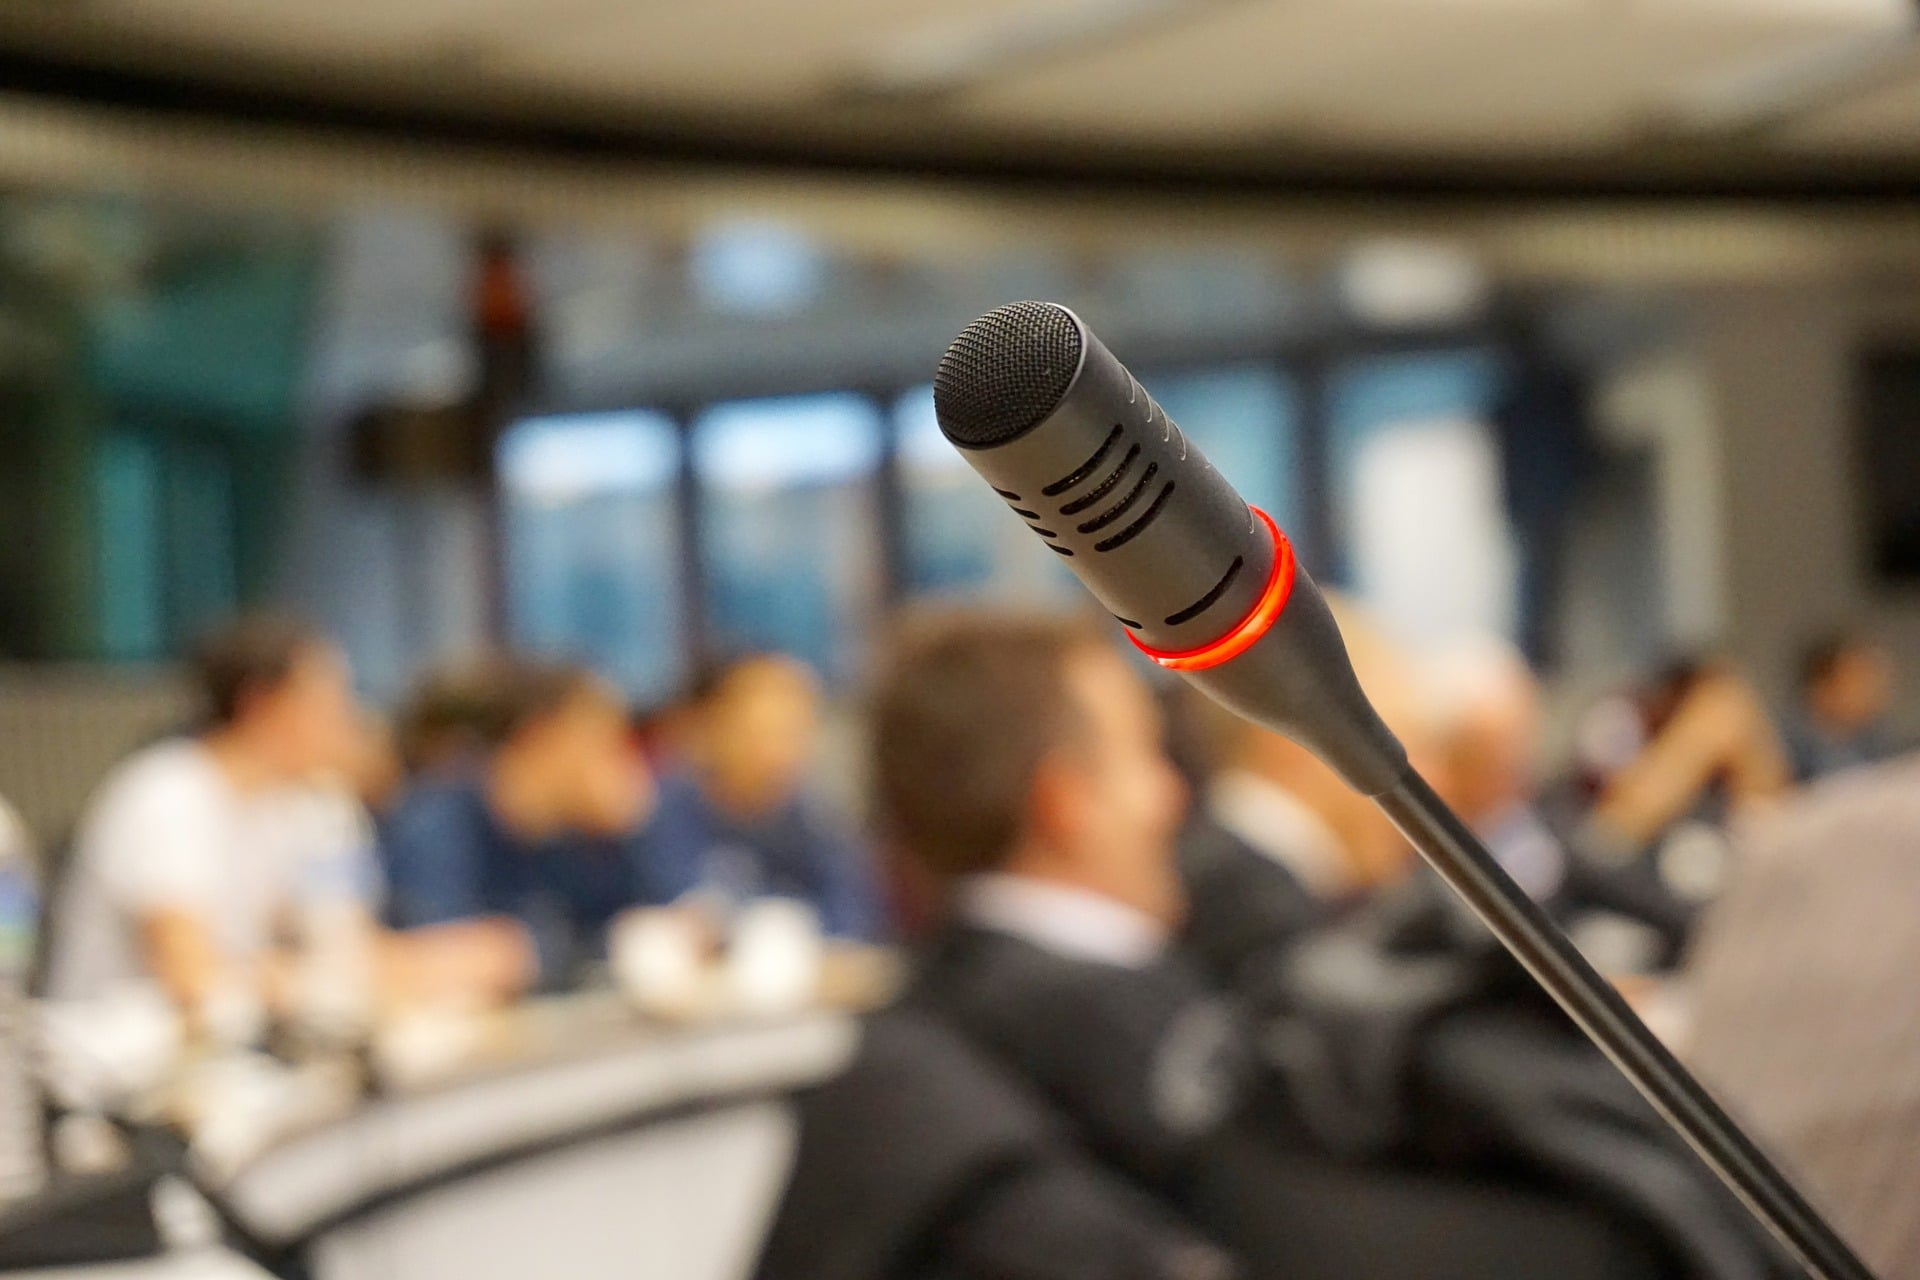 Photo of a microphone with people sitting in the background.